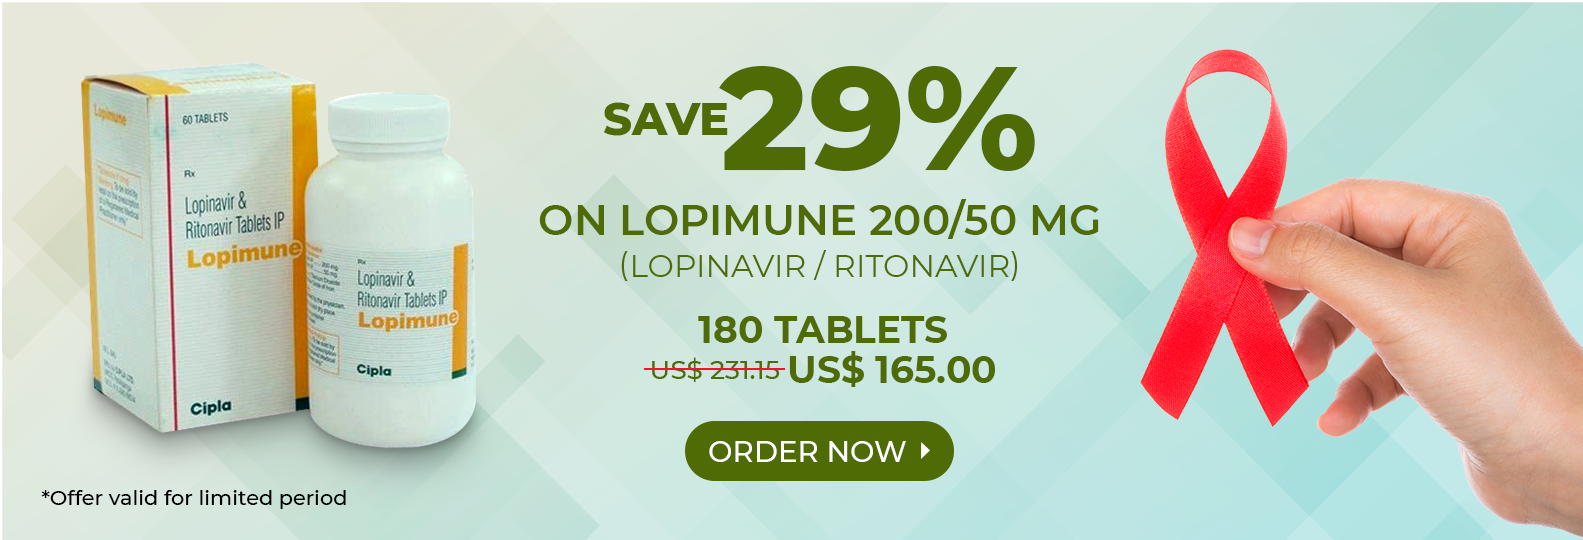 SAVE 29% on Lopimune